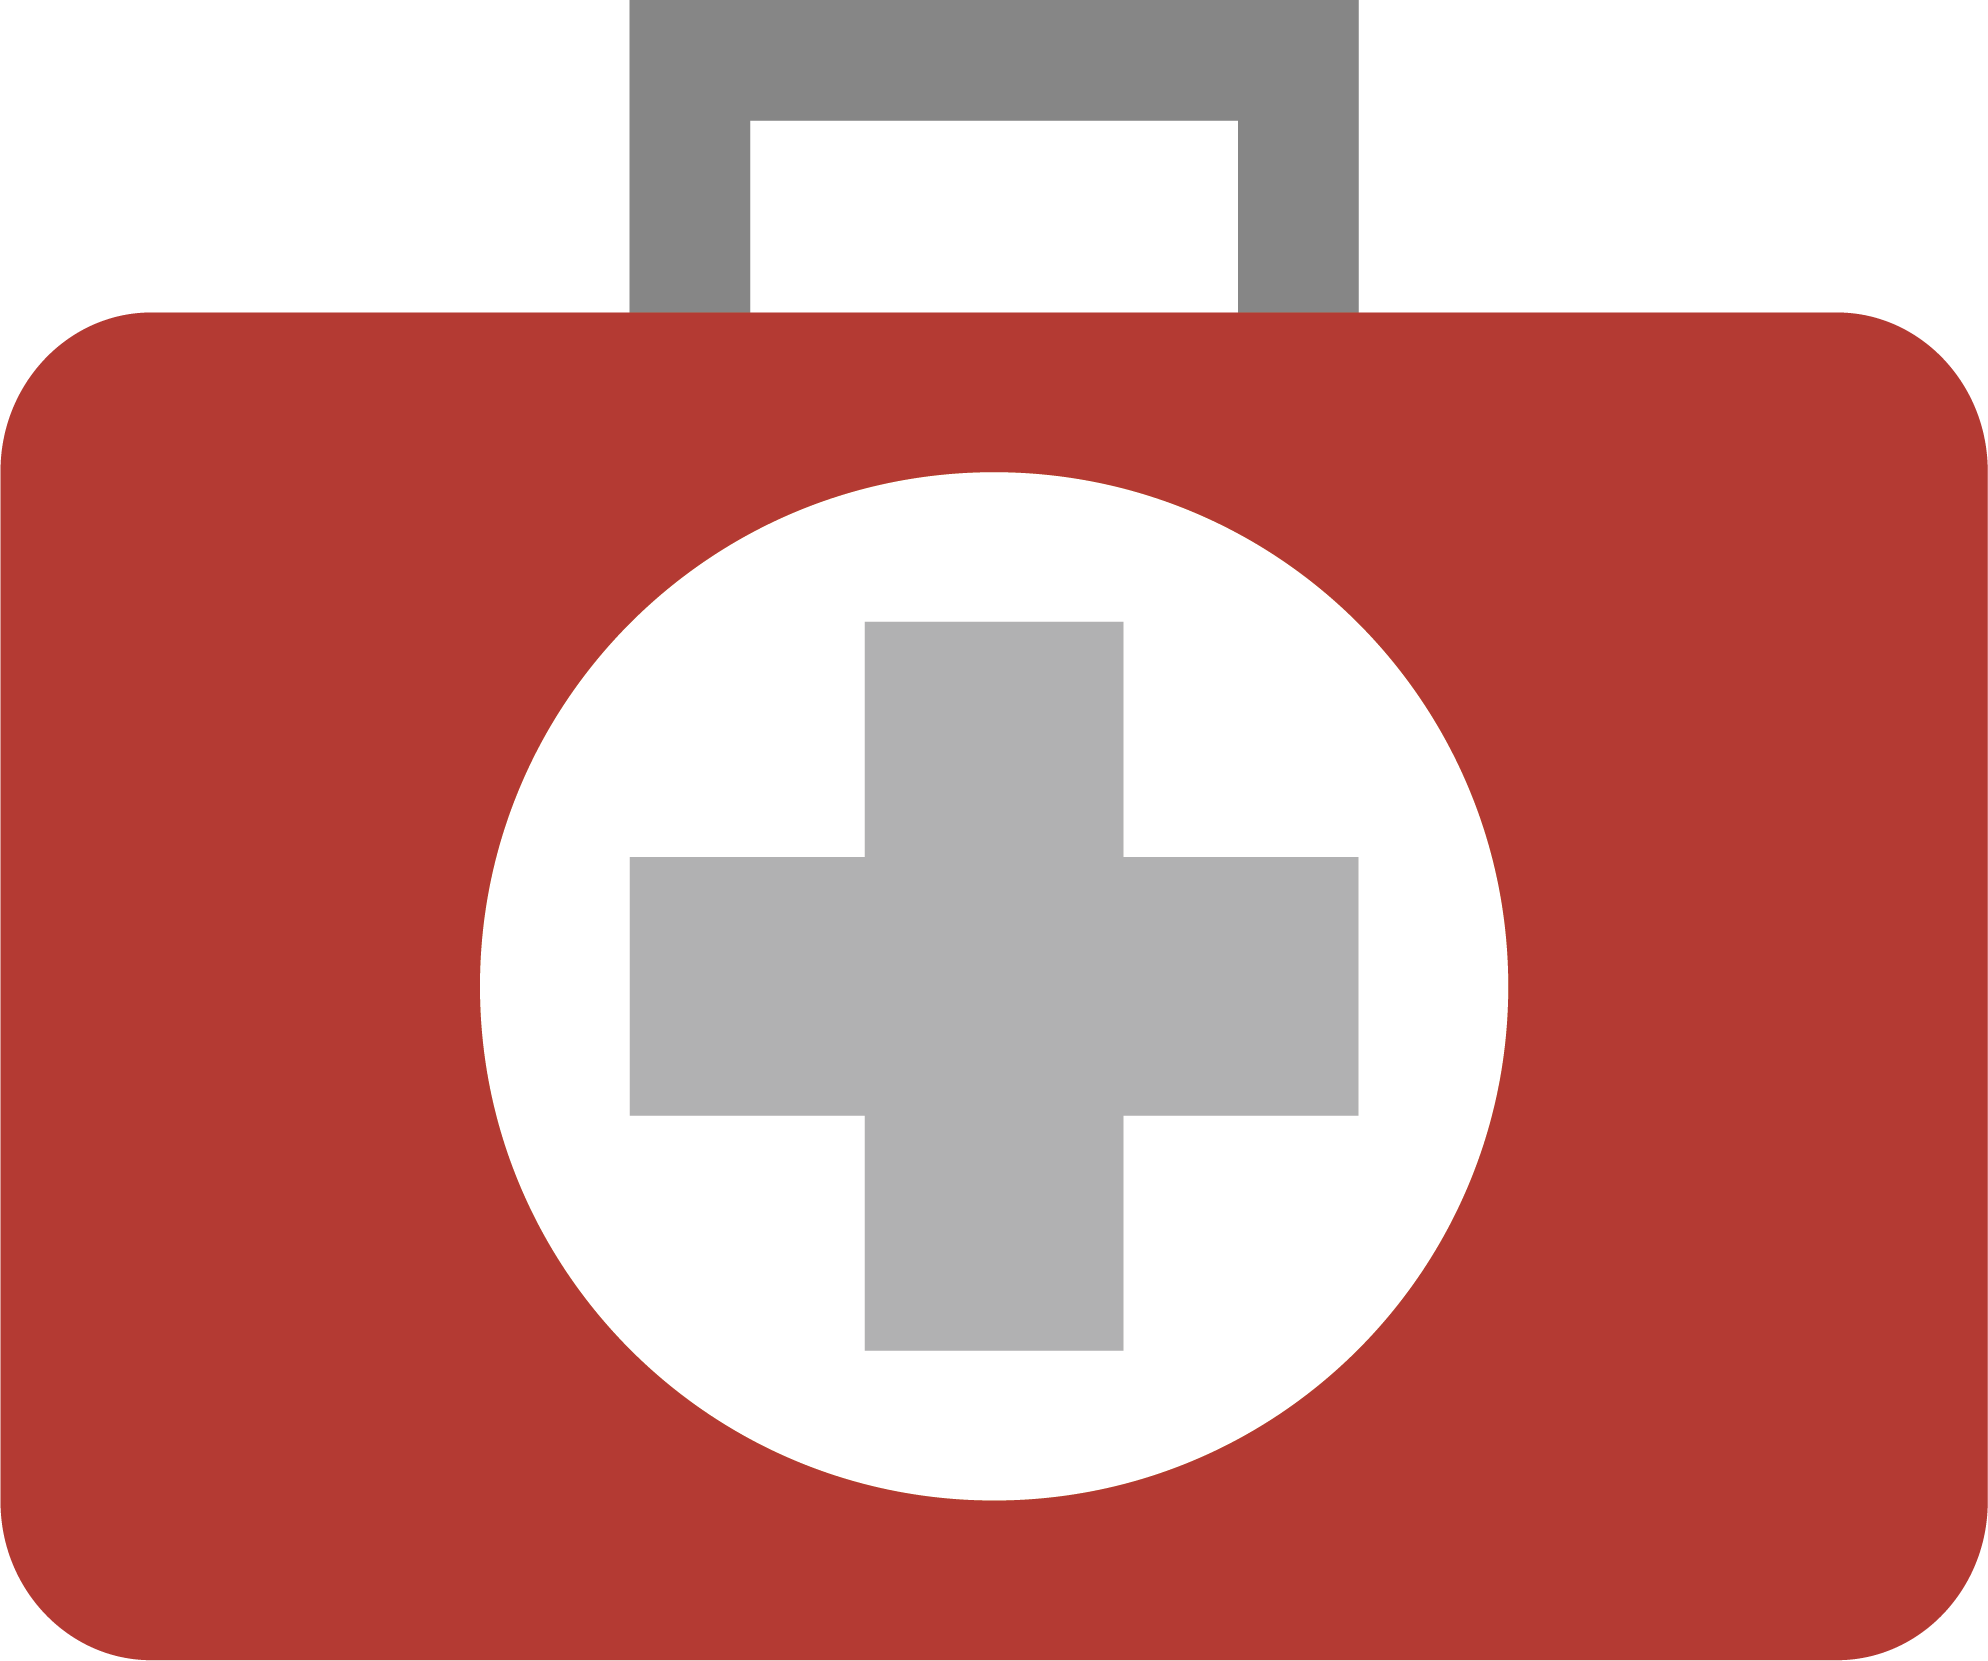 First aid transprent png. Emergency clipart medicine kit